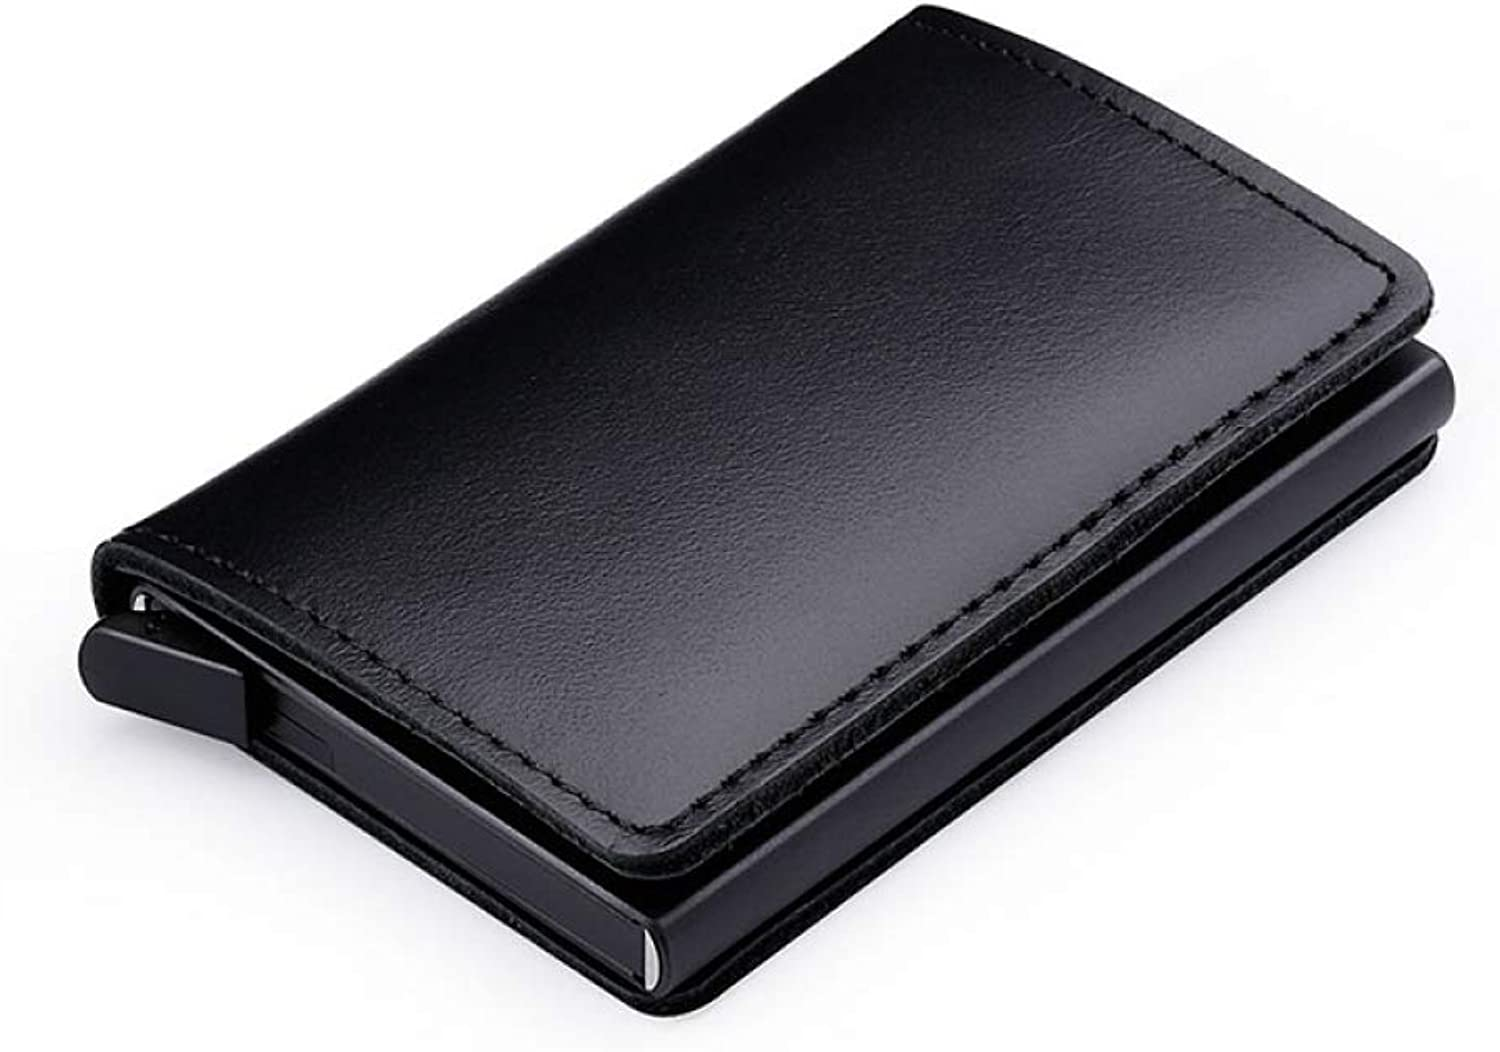 ZGSDYST RFID Blocking 100% Genuine Leather Credit Card Holder Aluminum Metal Business ID Cardholder Slim Card Case Mini Wallet